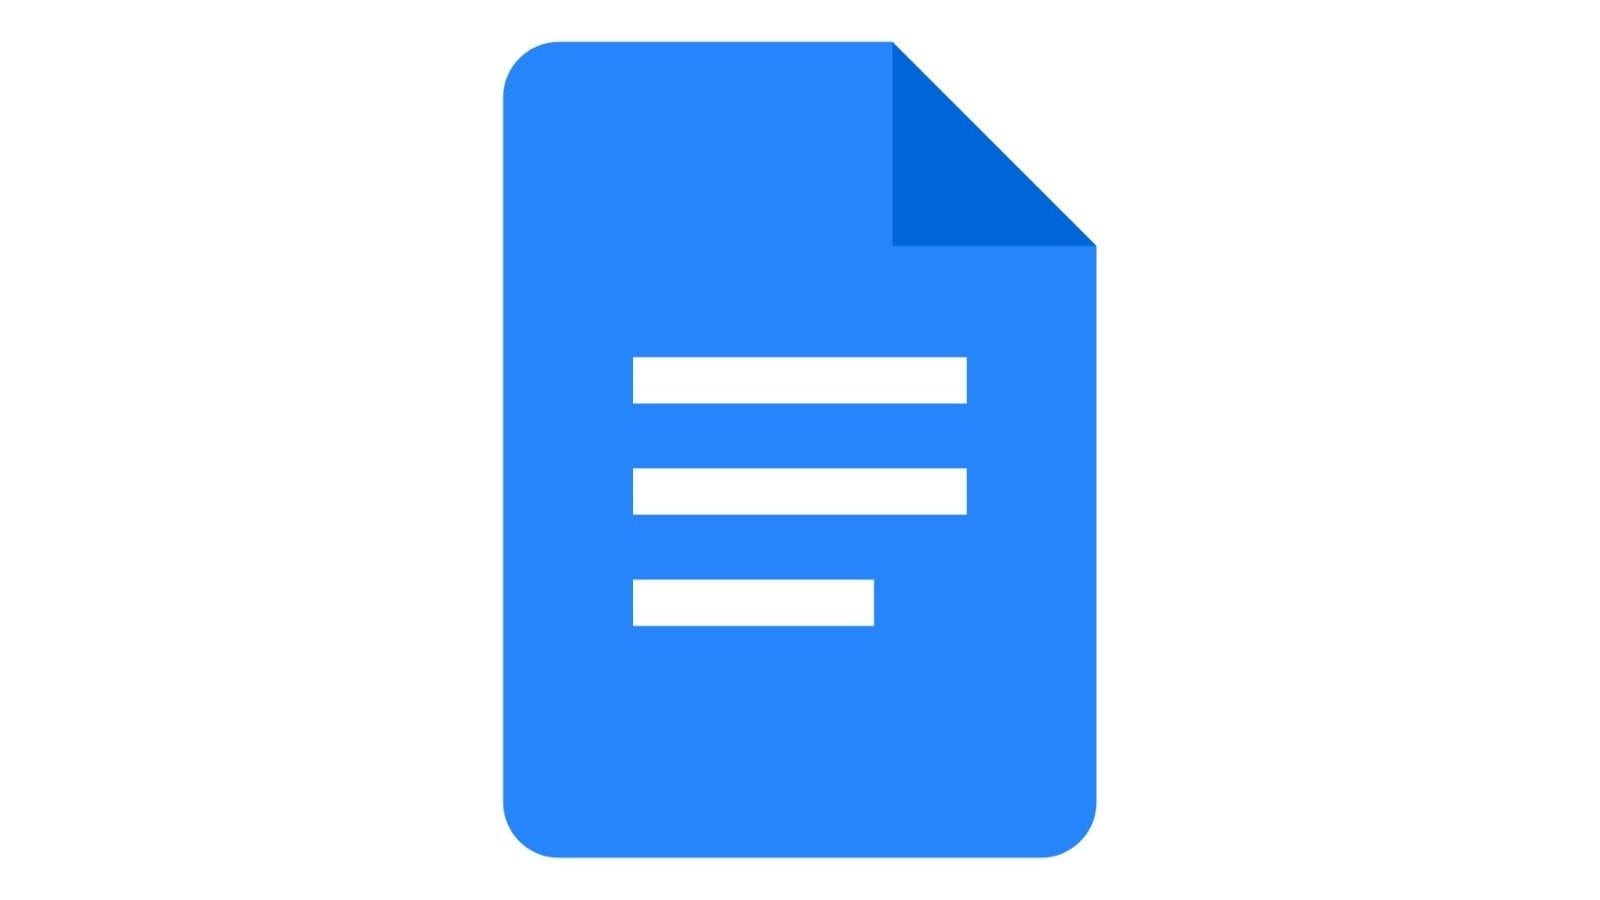 Want To Add Your Signature To Digital Document? Here's How To Do It Via Google Docs